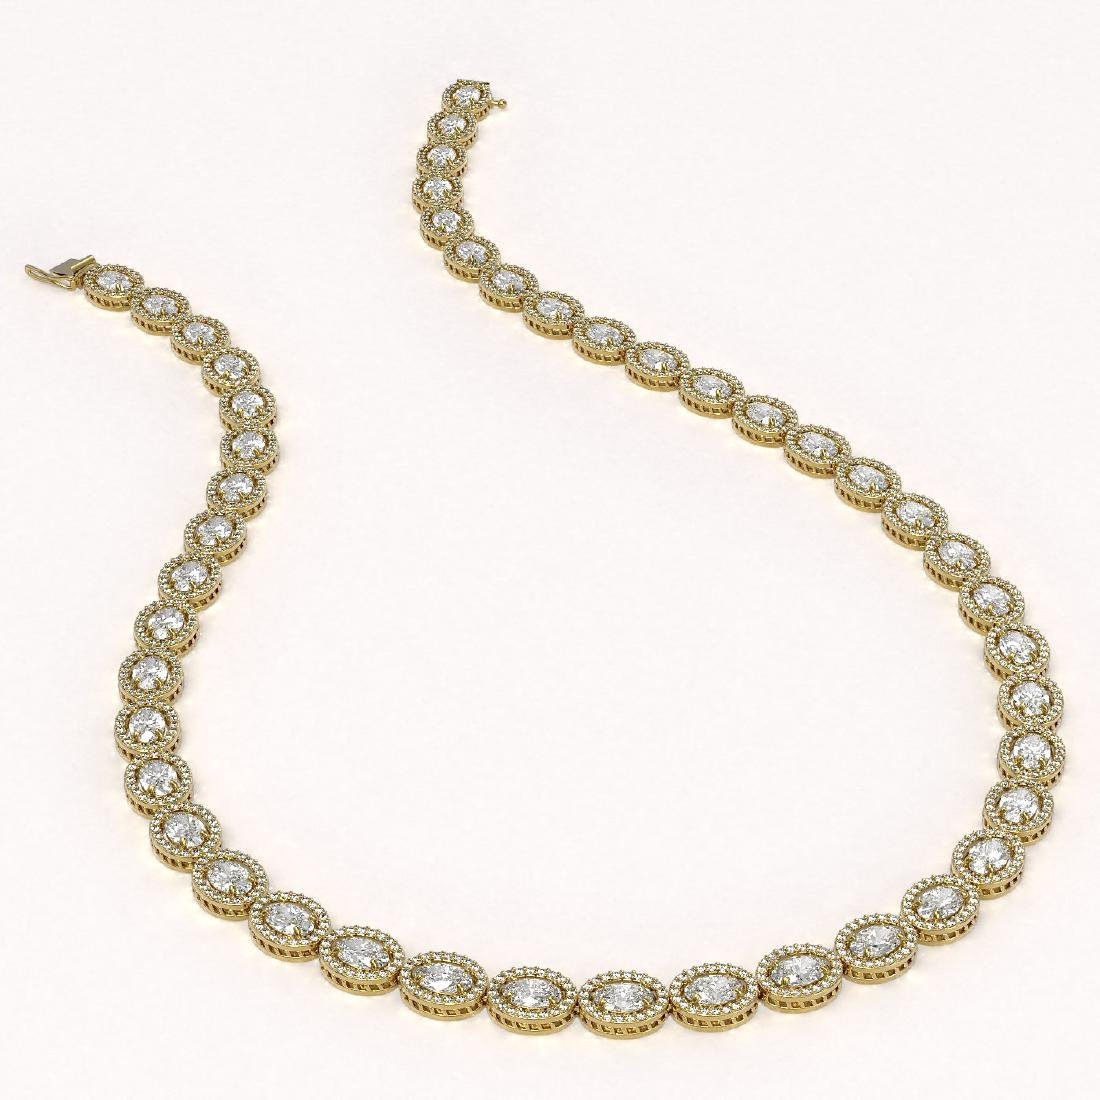 34.96 CTW Oval Diamond Designer Necklace 18K Yellow